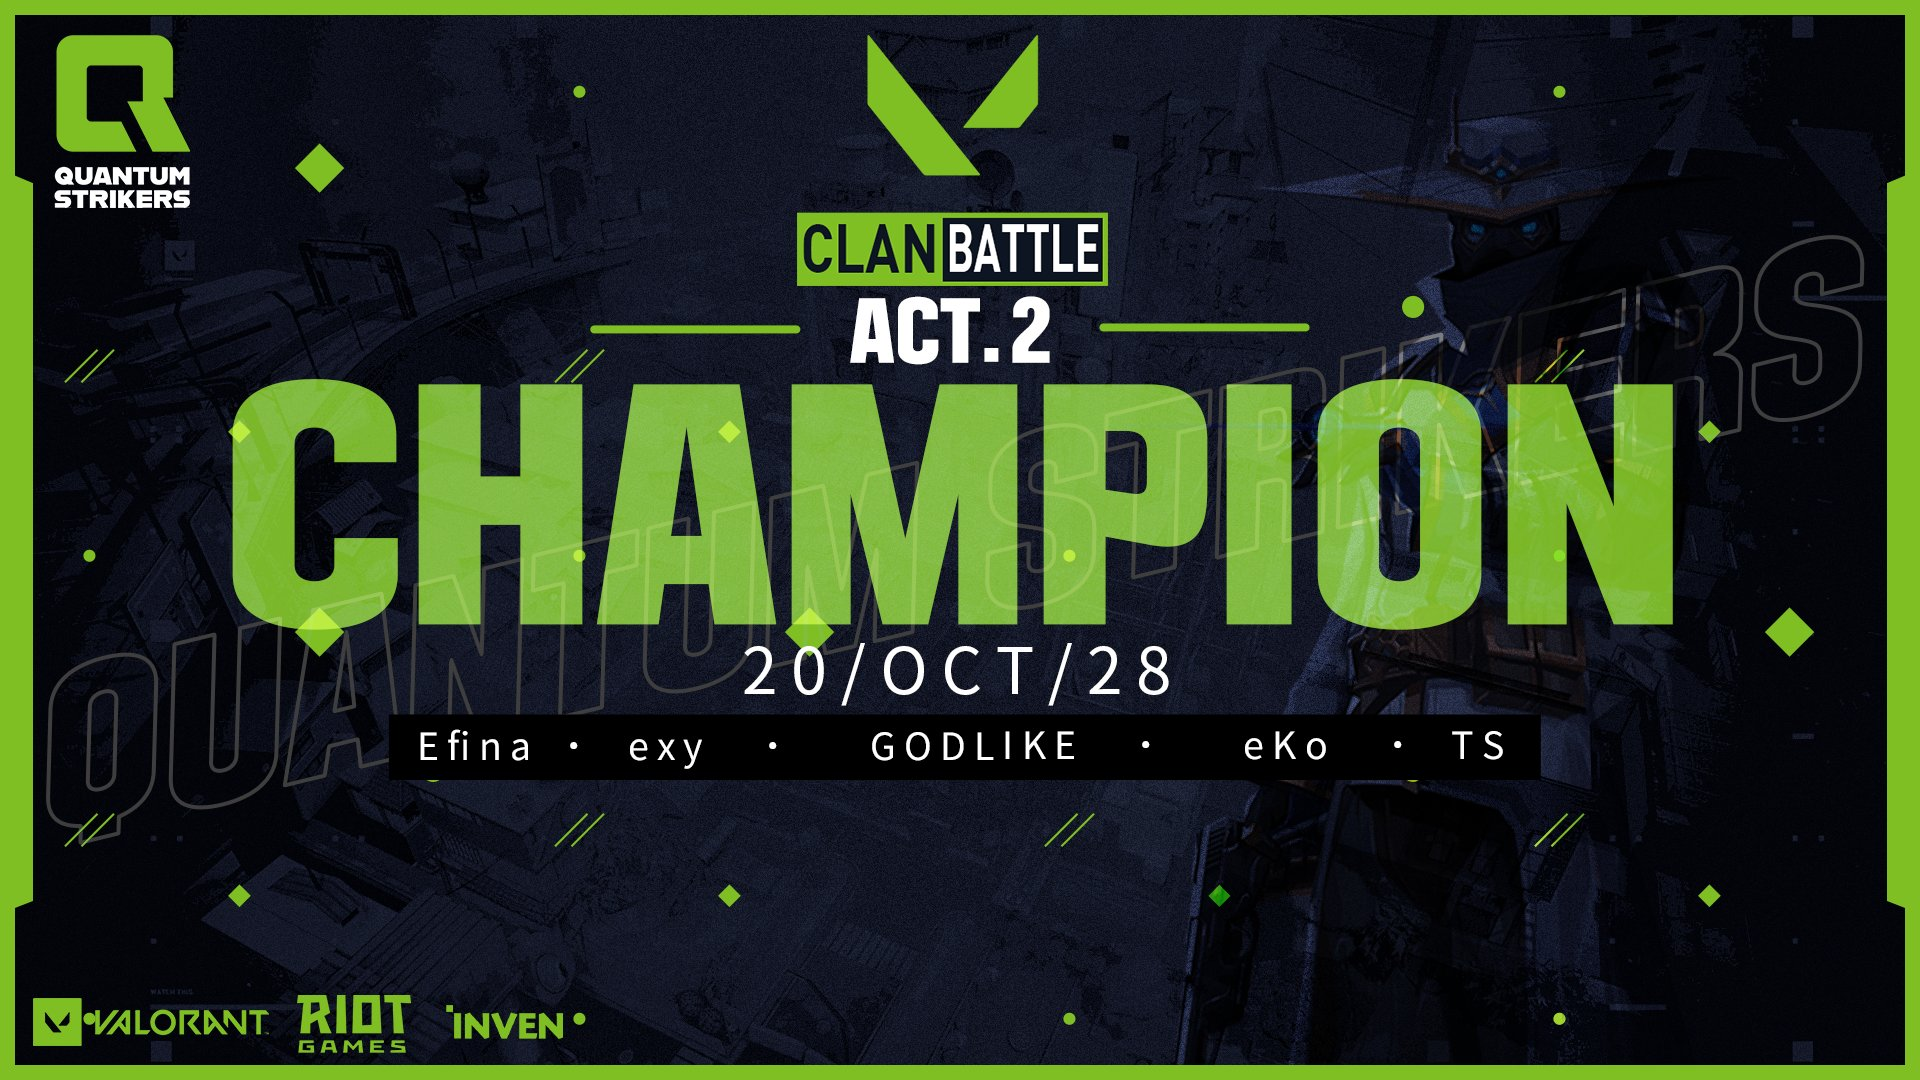 Clan Battle Act 2 #4 – Quantum Strikers Take First Place